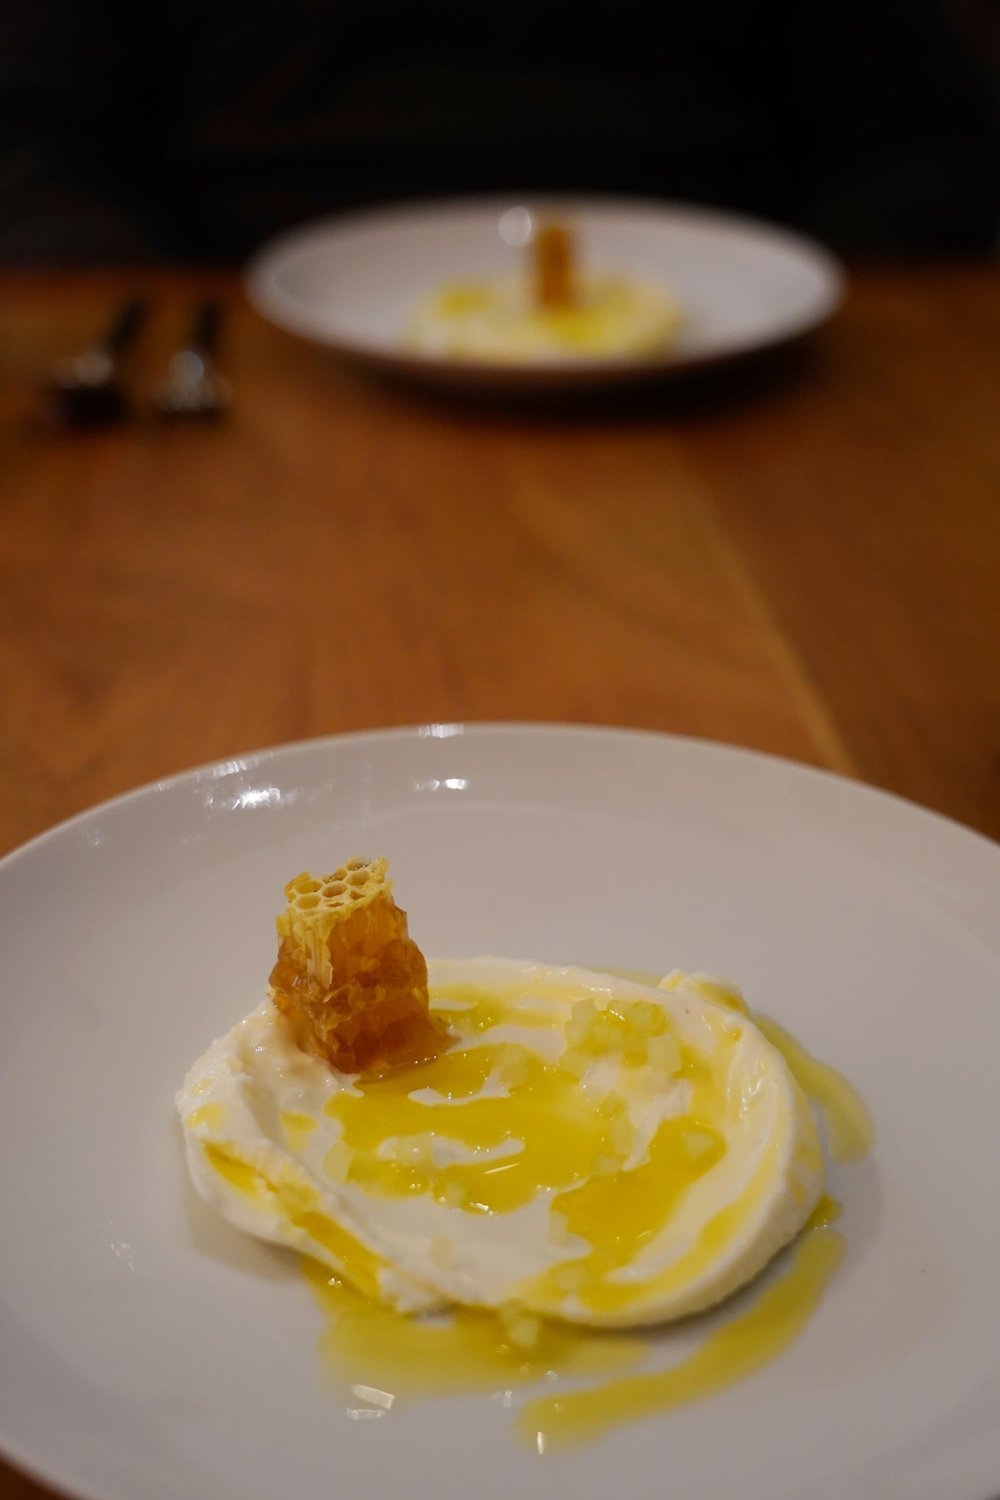 Frozen yogurt, arbequina olive oil and honeycomb.